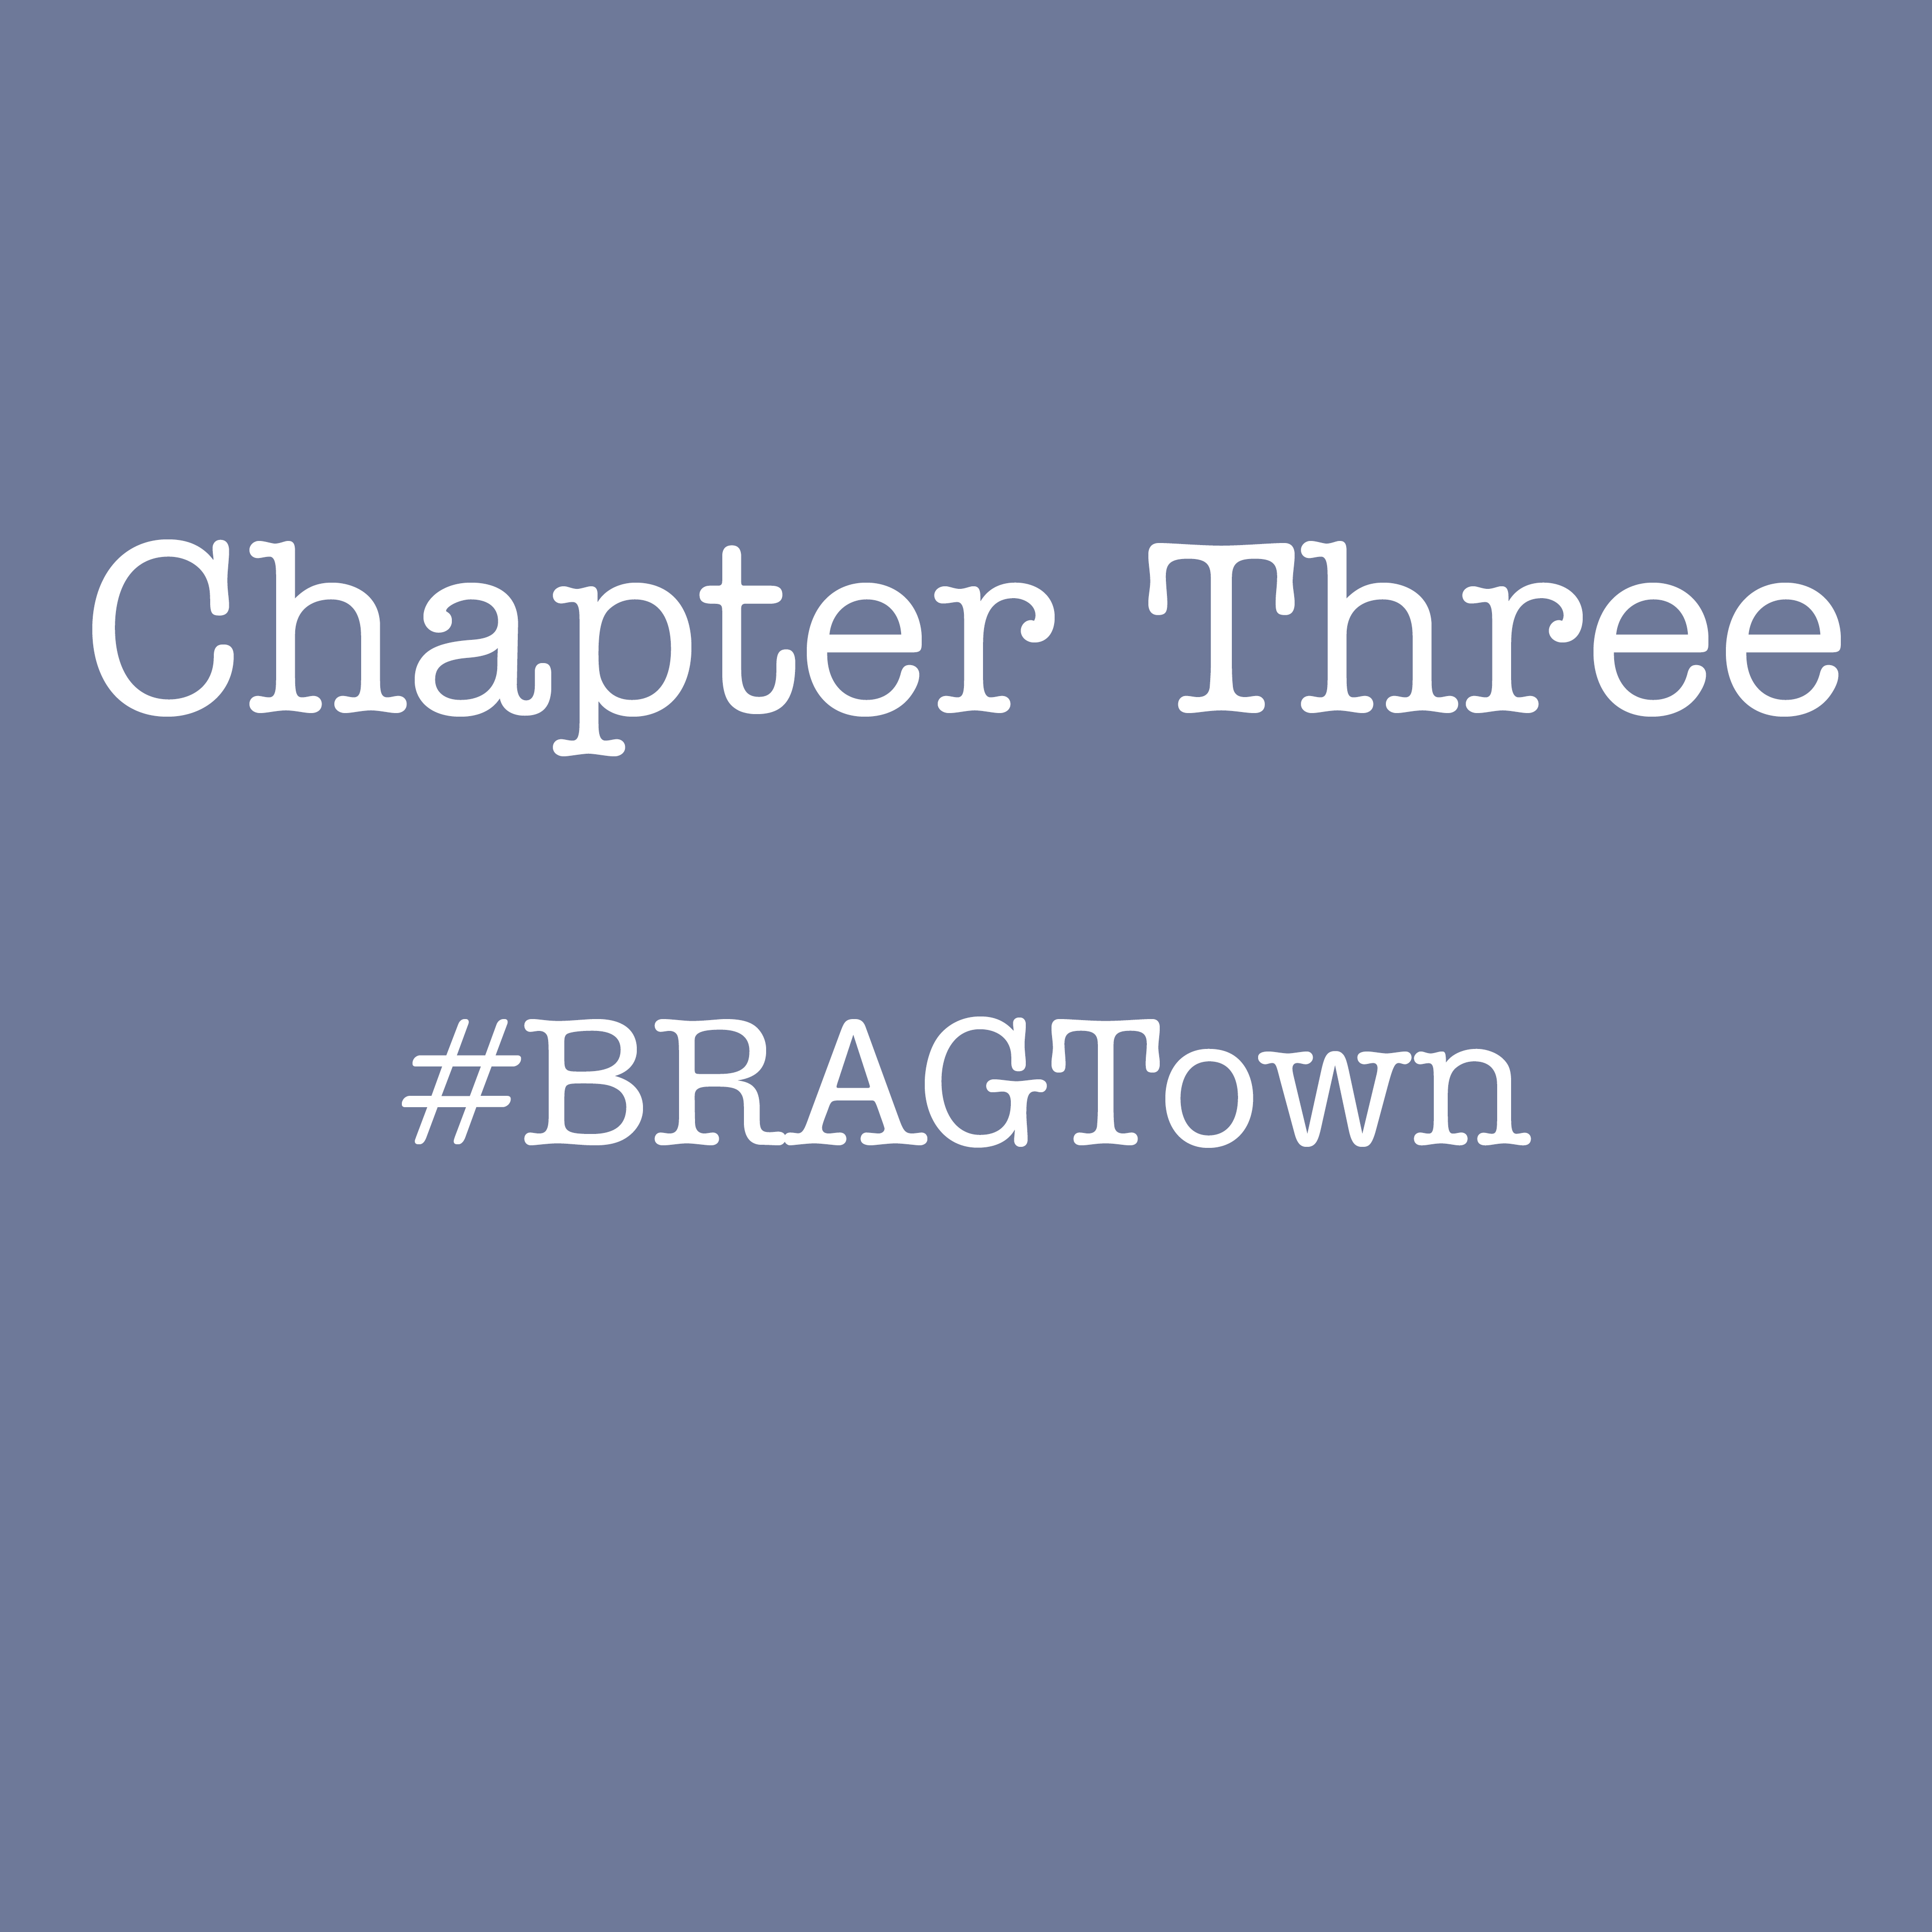 Chapter Three: BRAG Town